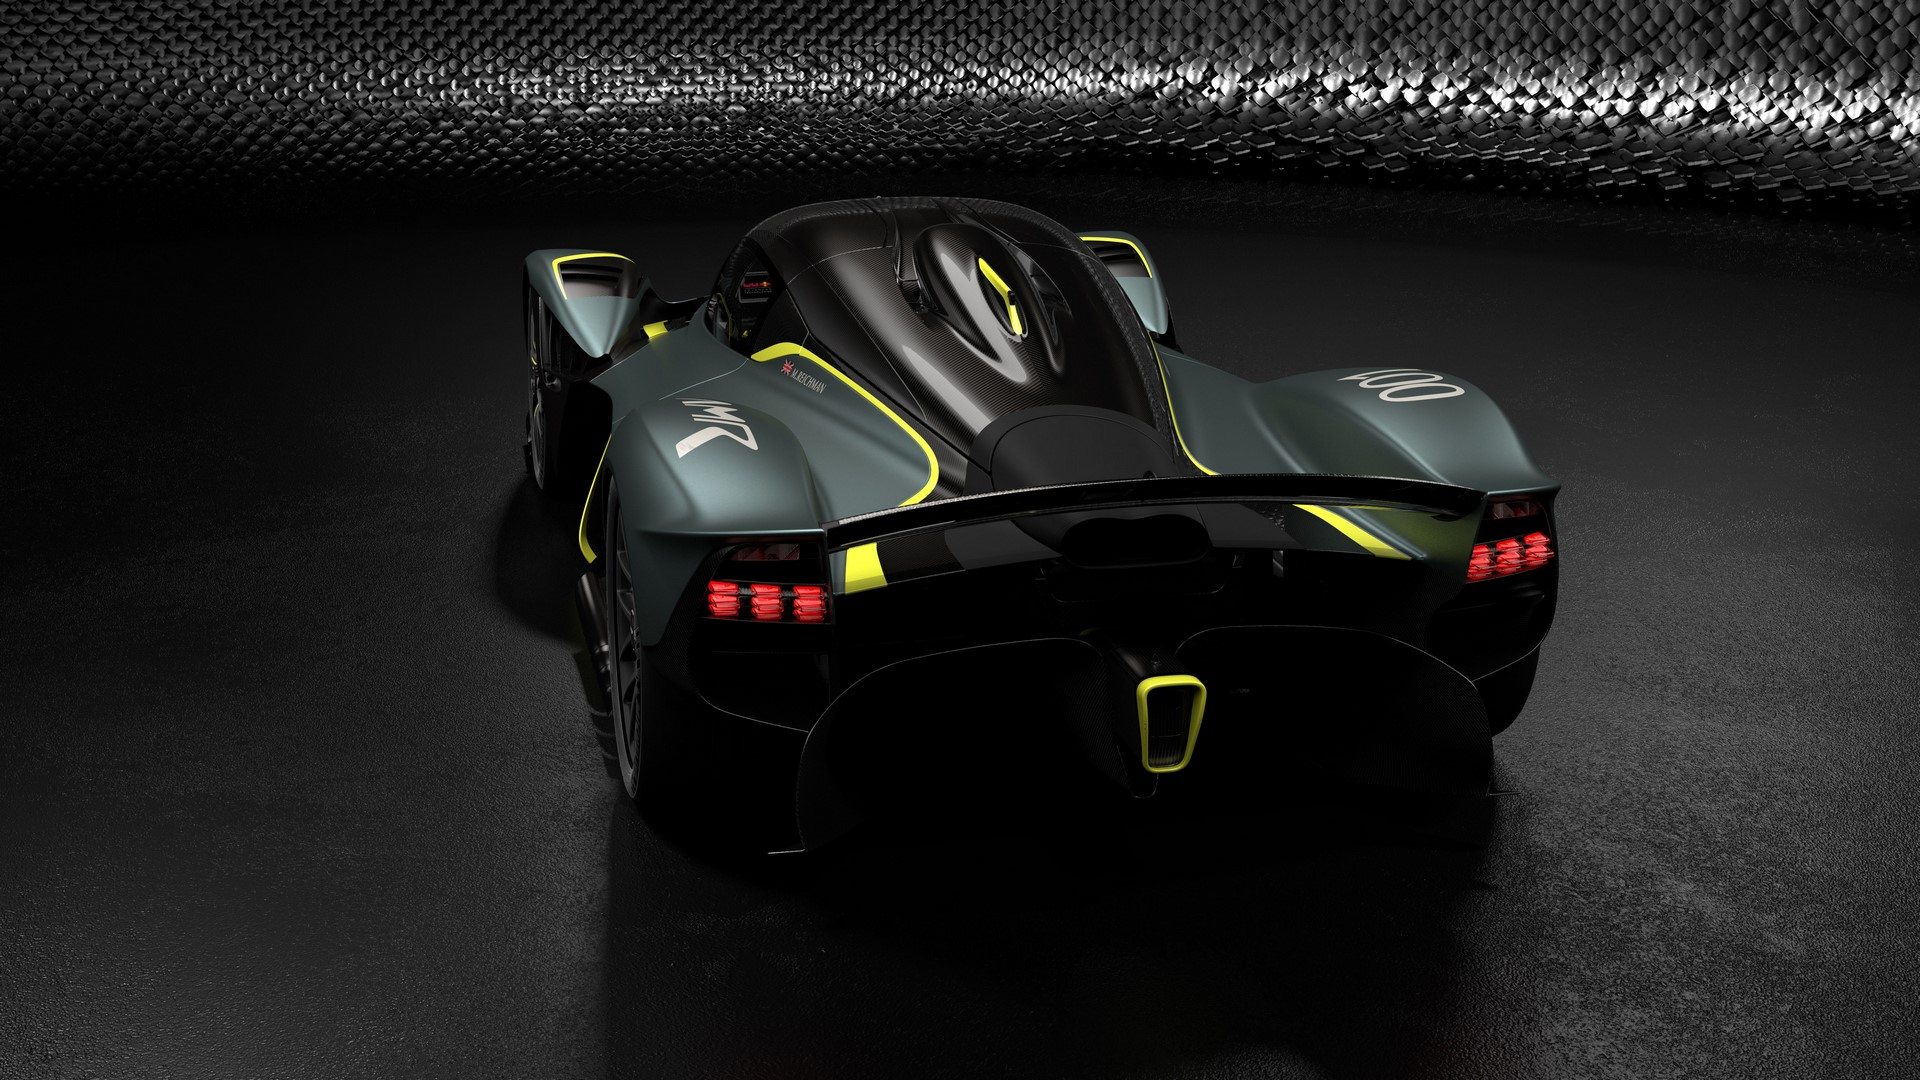 Aston Martin Valkyrie with AMR Track Performance Pack - Stirling Green and Lime livery (2)